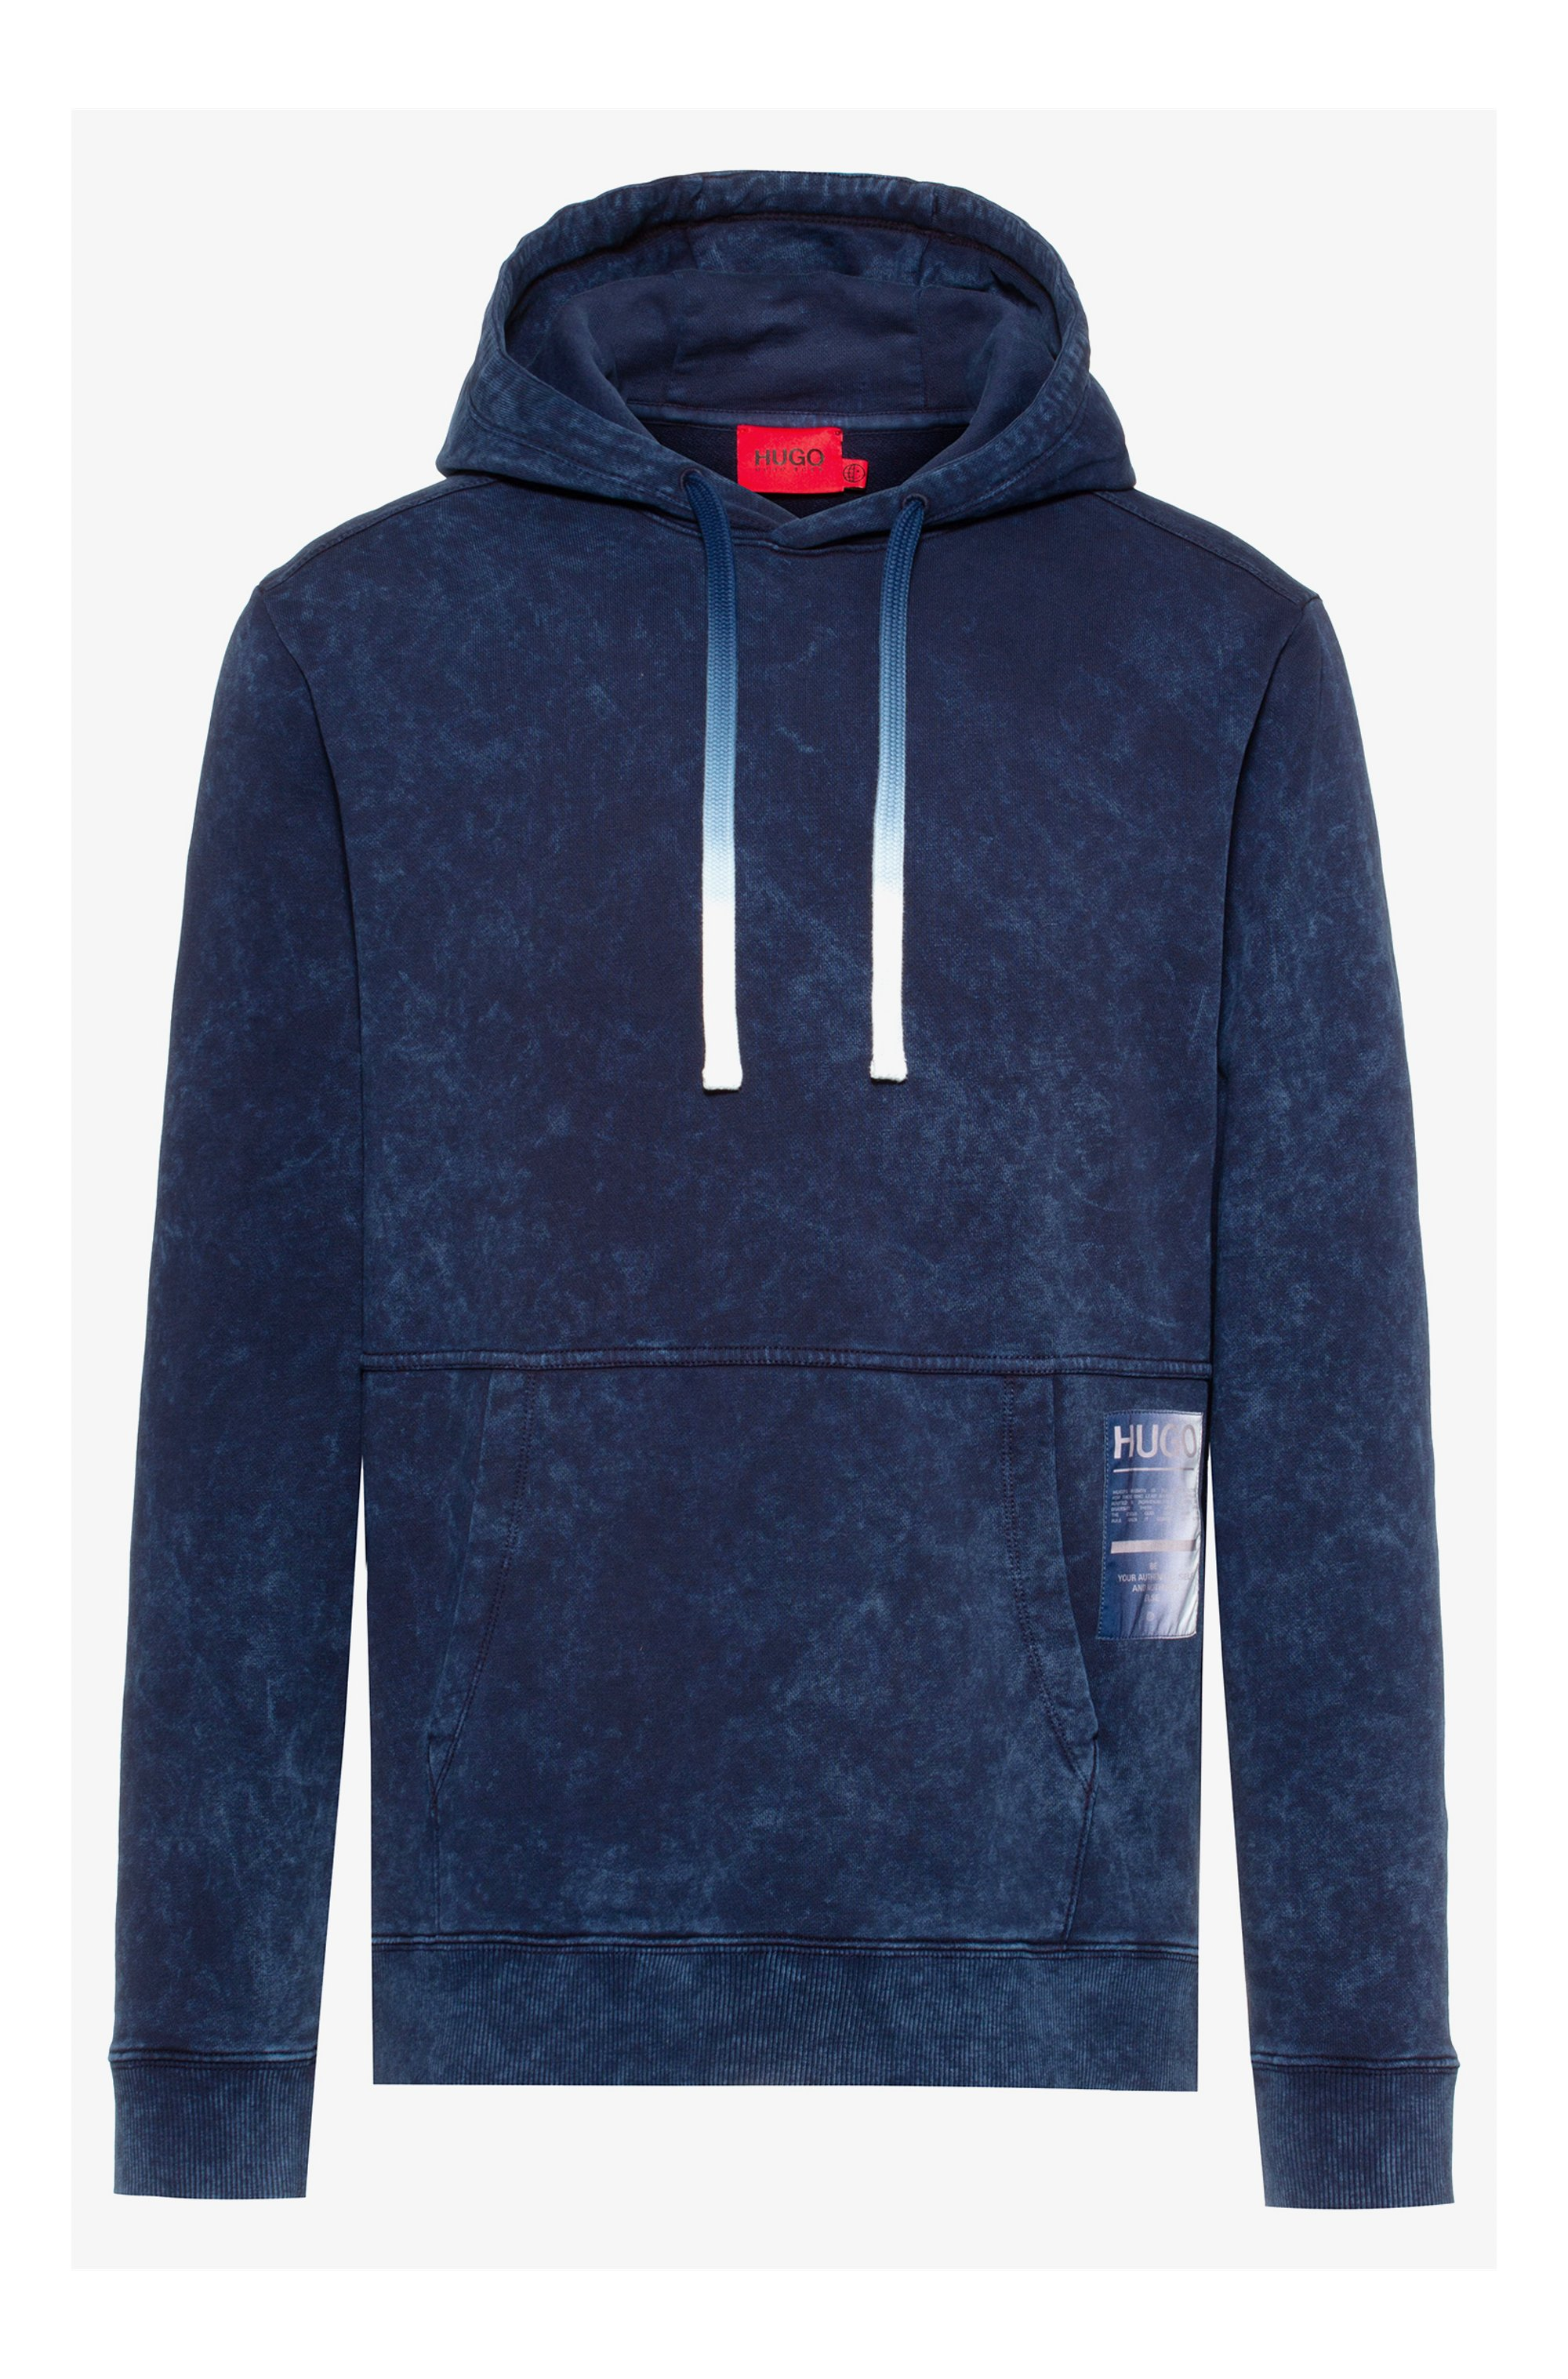 Hooded sweatshirt in Recot2® cotton with manifesto logo, Light Blue